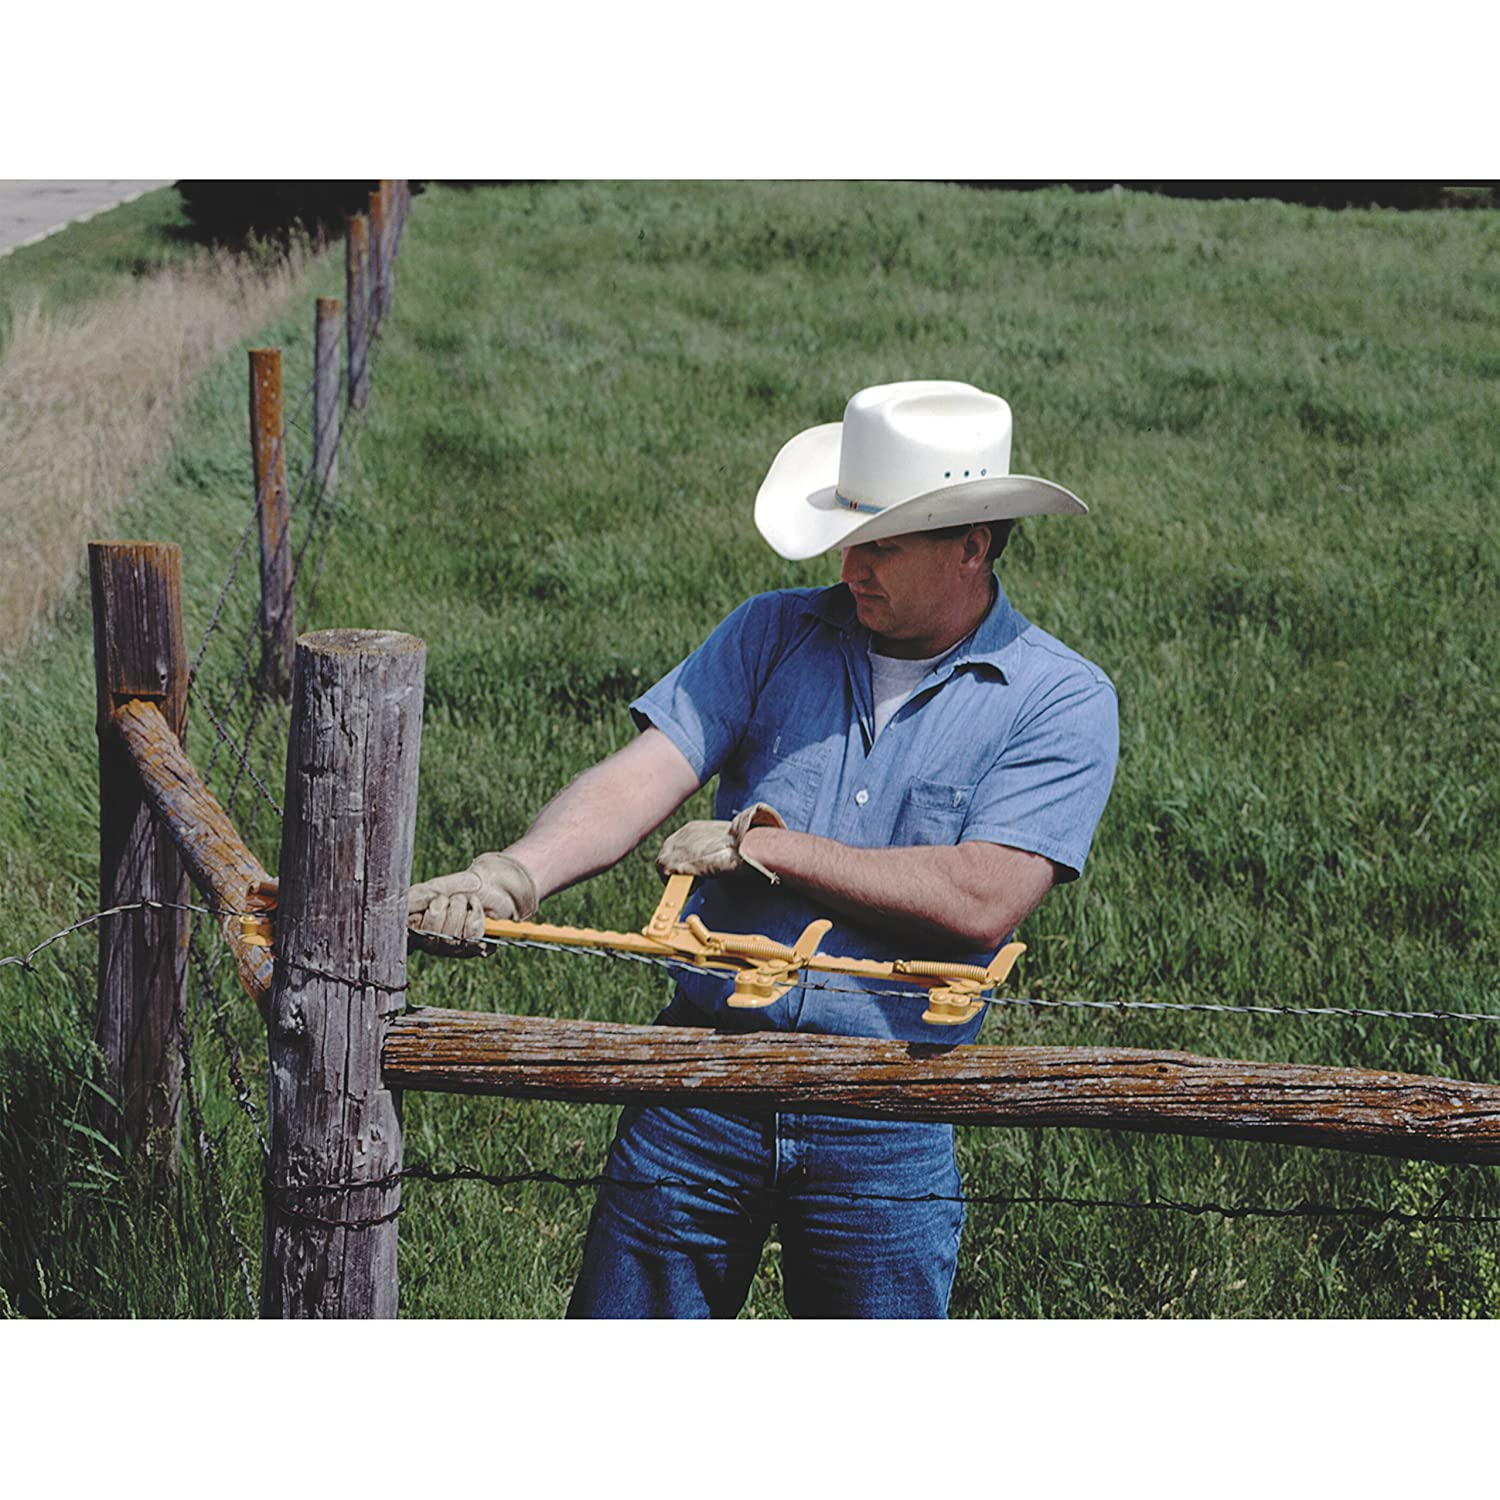 Amazon.com : GoldenRod Hired Hand Fence Stretcher with 3rd Hook ...